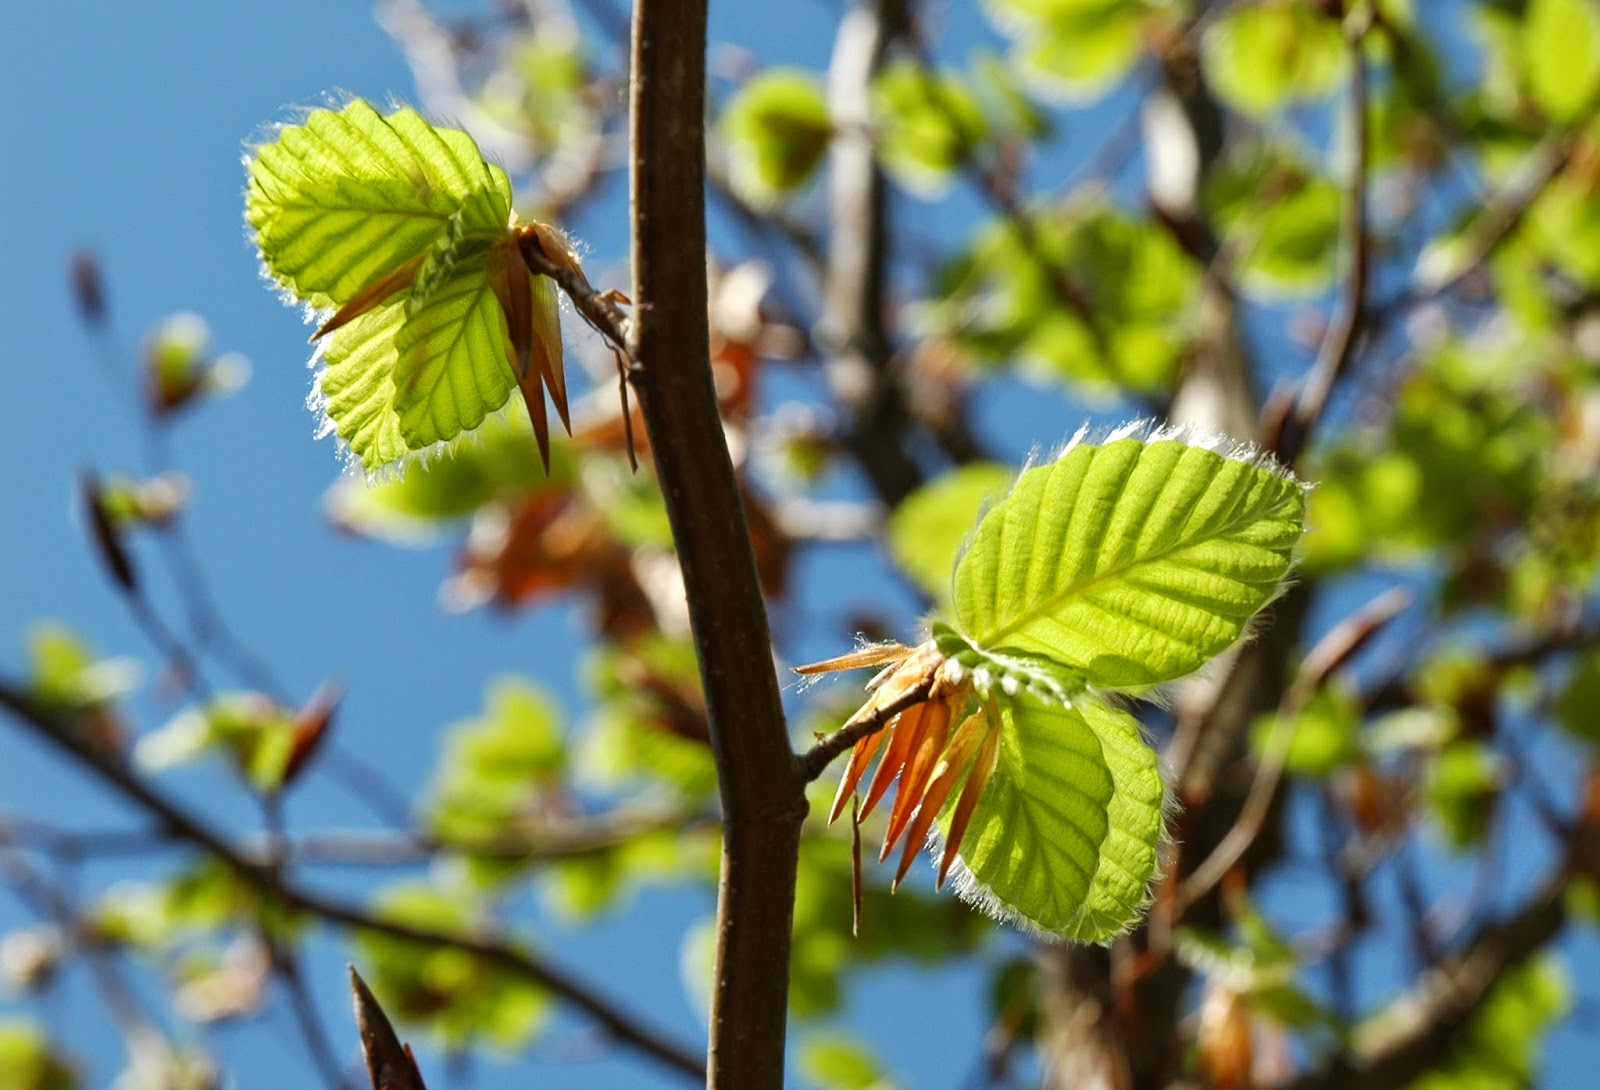 Benefits Of Beech Tree (Fagus Grandifolia) For Health